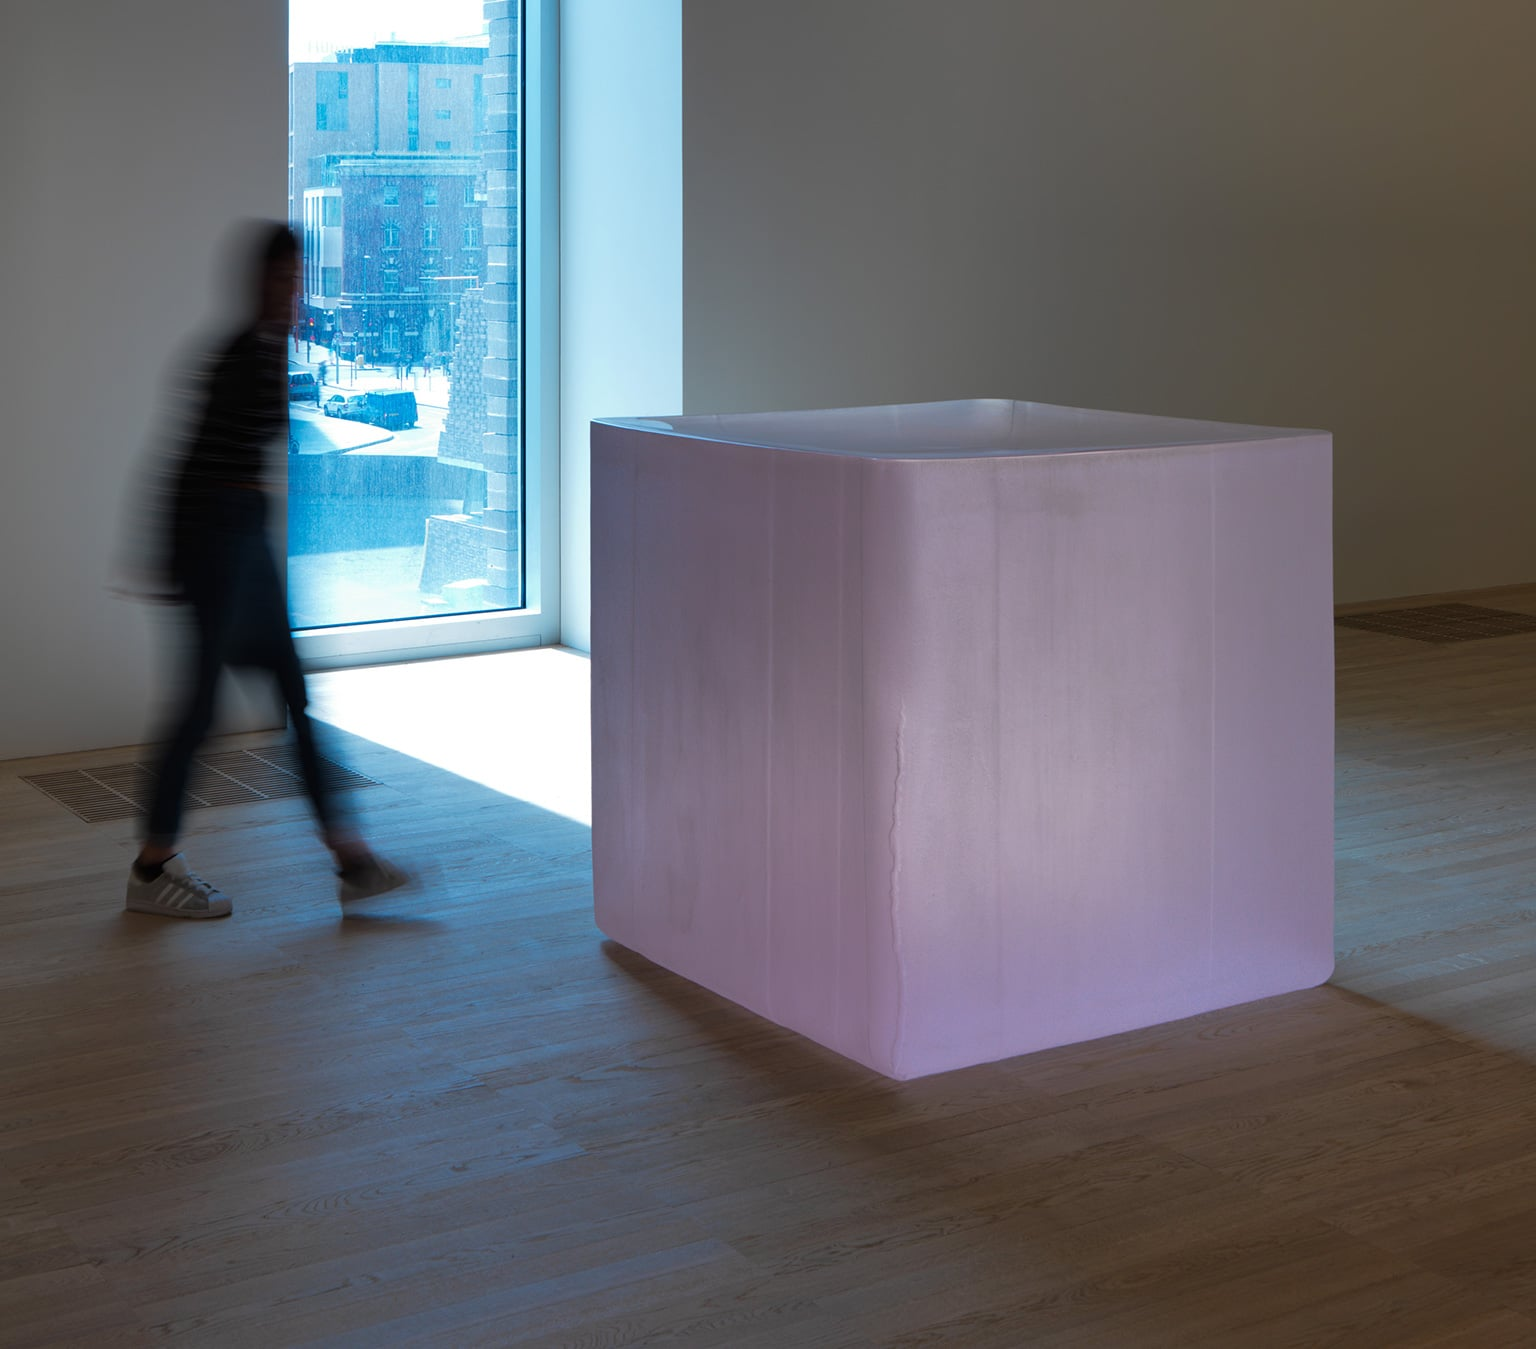 Roni Horn, Pink Tons, 2009